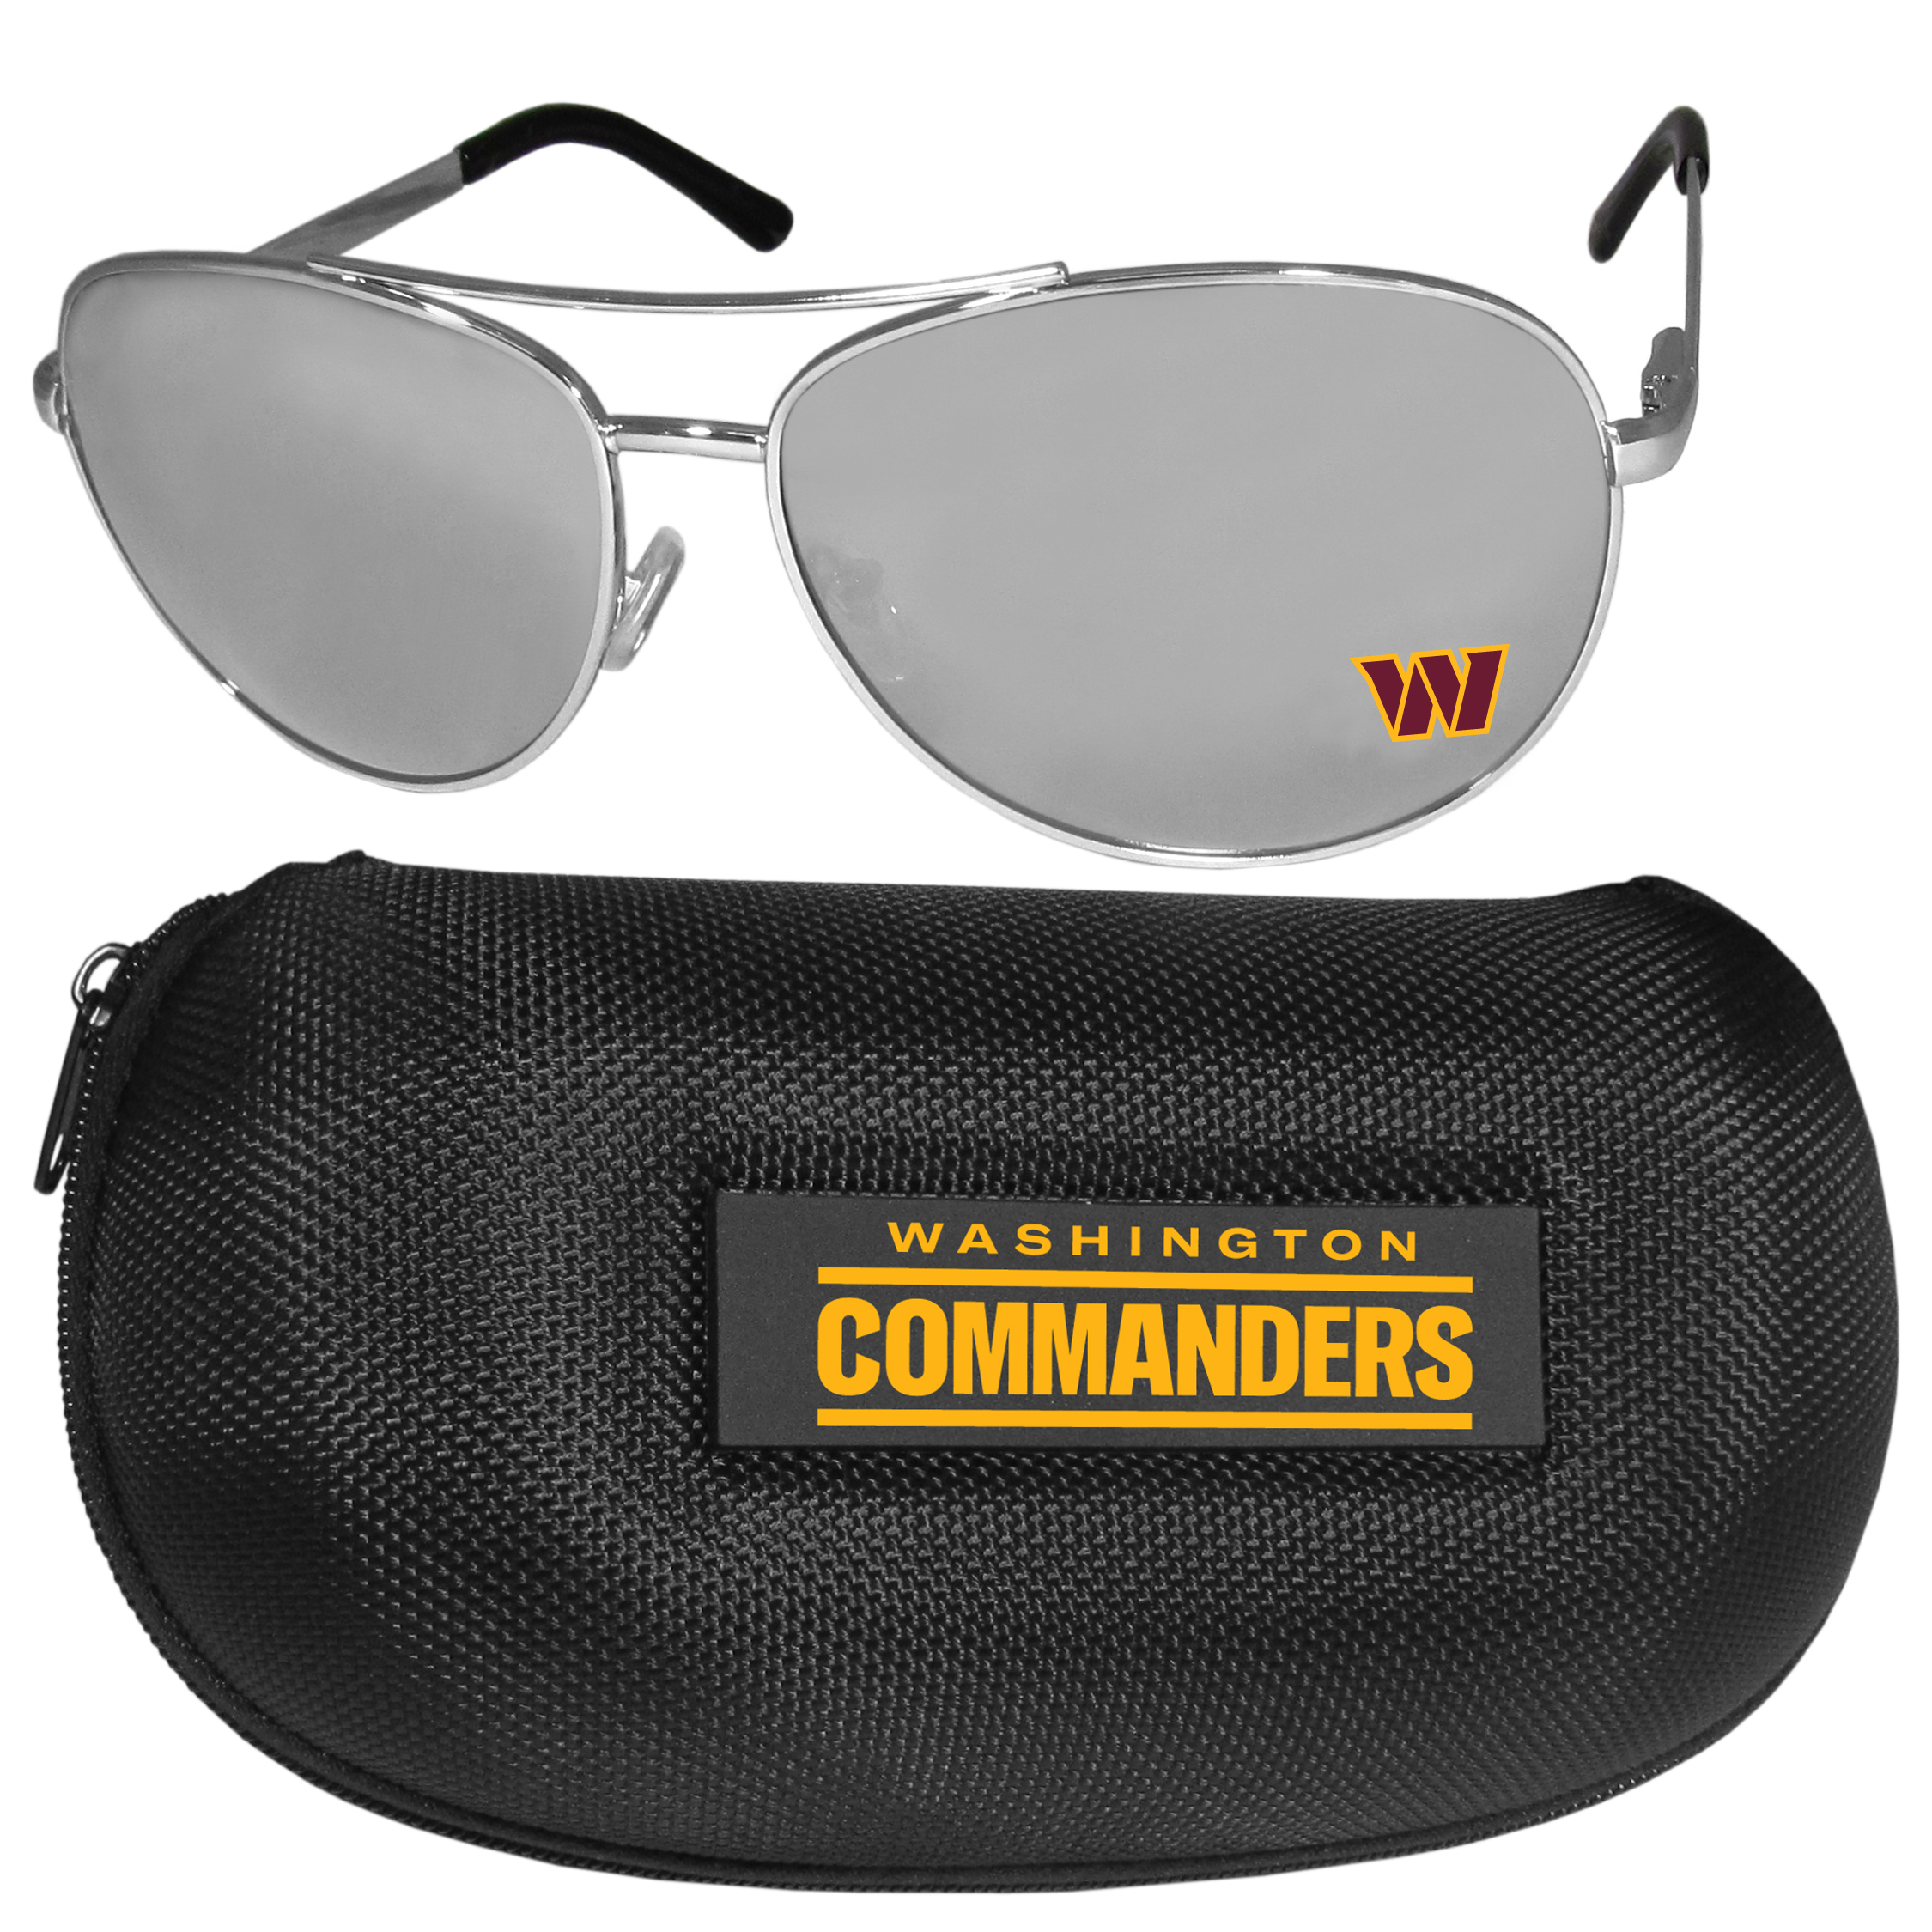 Washington Redskins Aviator Sunglasses and Zippered Carrying Case - Aviator sunglasses are truly an iconic retro fashion statement that never goes out-of-style. Our Washington Redskins  aviator sunglasses pair this classic look with your love of the game. The iridium coated lenses reduce glare while driving, boating, golfing and their 100% UVA/UVB rating provides you with the maximum UV protection for all your outdoor activities. A millennial favorite, these affordable designer frames are the perfect eyewear accessory for a sports fan that is looking for high-quality at an affordable price. The durable, flex hinged frames are tough enough for hiking and camping or if you prefer sun bathing by the pool or on the beach these shades will really stand the test of time. The sunglasses come with a hard shell zippered case which has a large team logo on the lid that will make even the most die-hard fan proud!